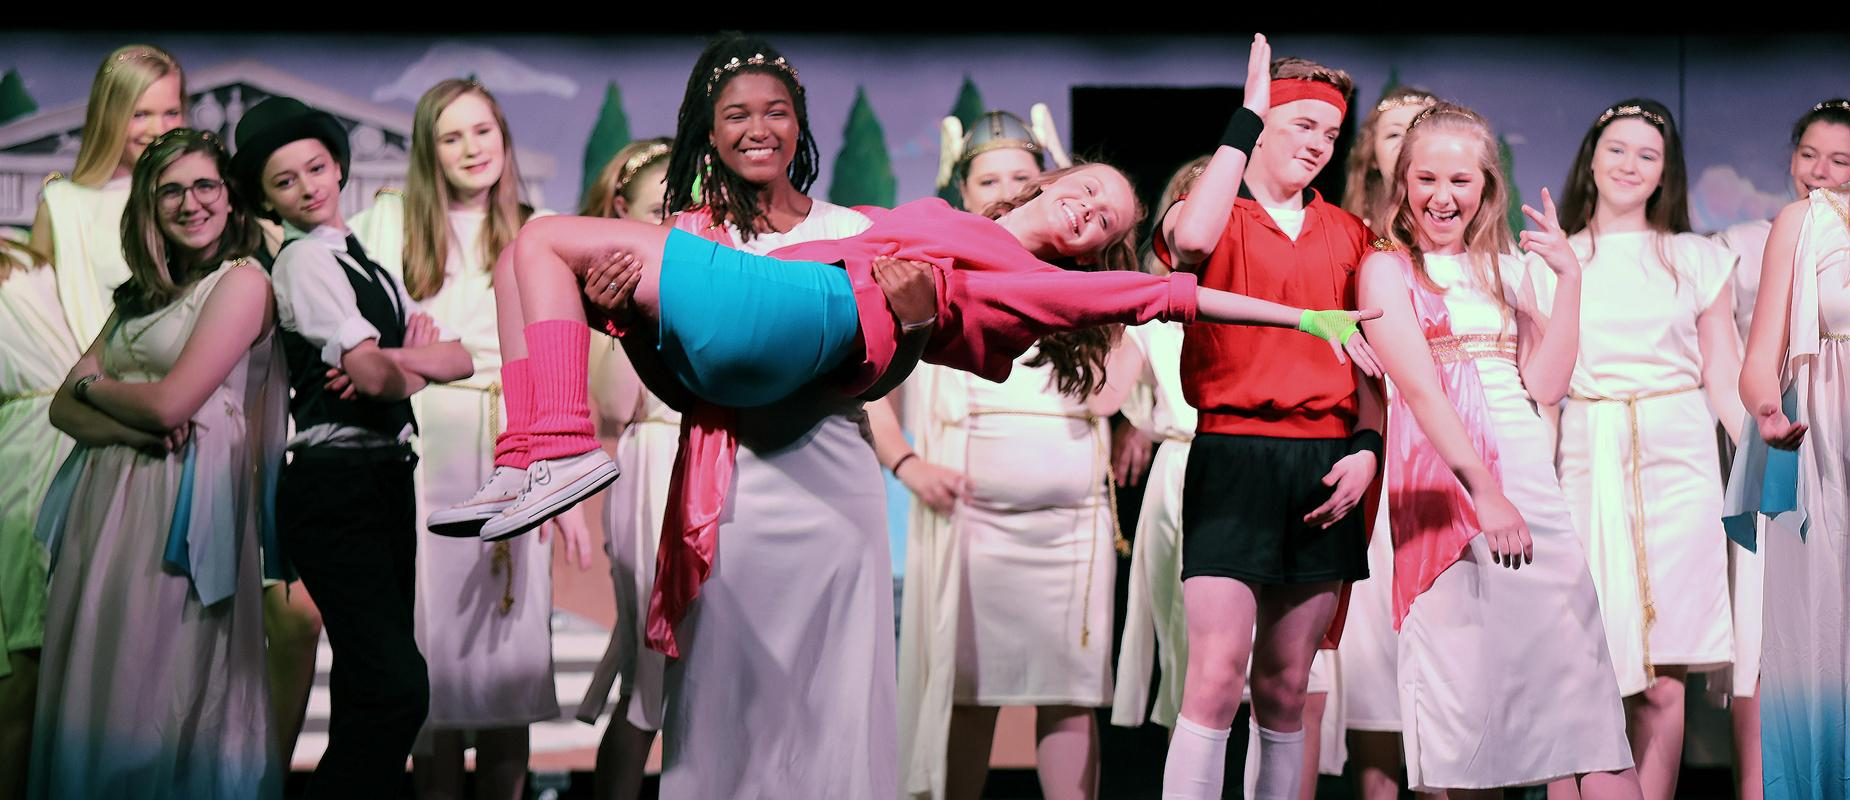 students portray Xanadu Jr. on stage with girl holding onto girl in pink top while rest of cast smiles and celebrates the play